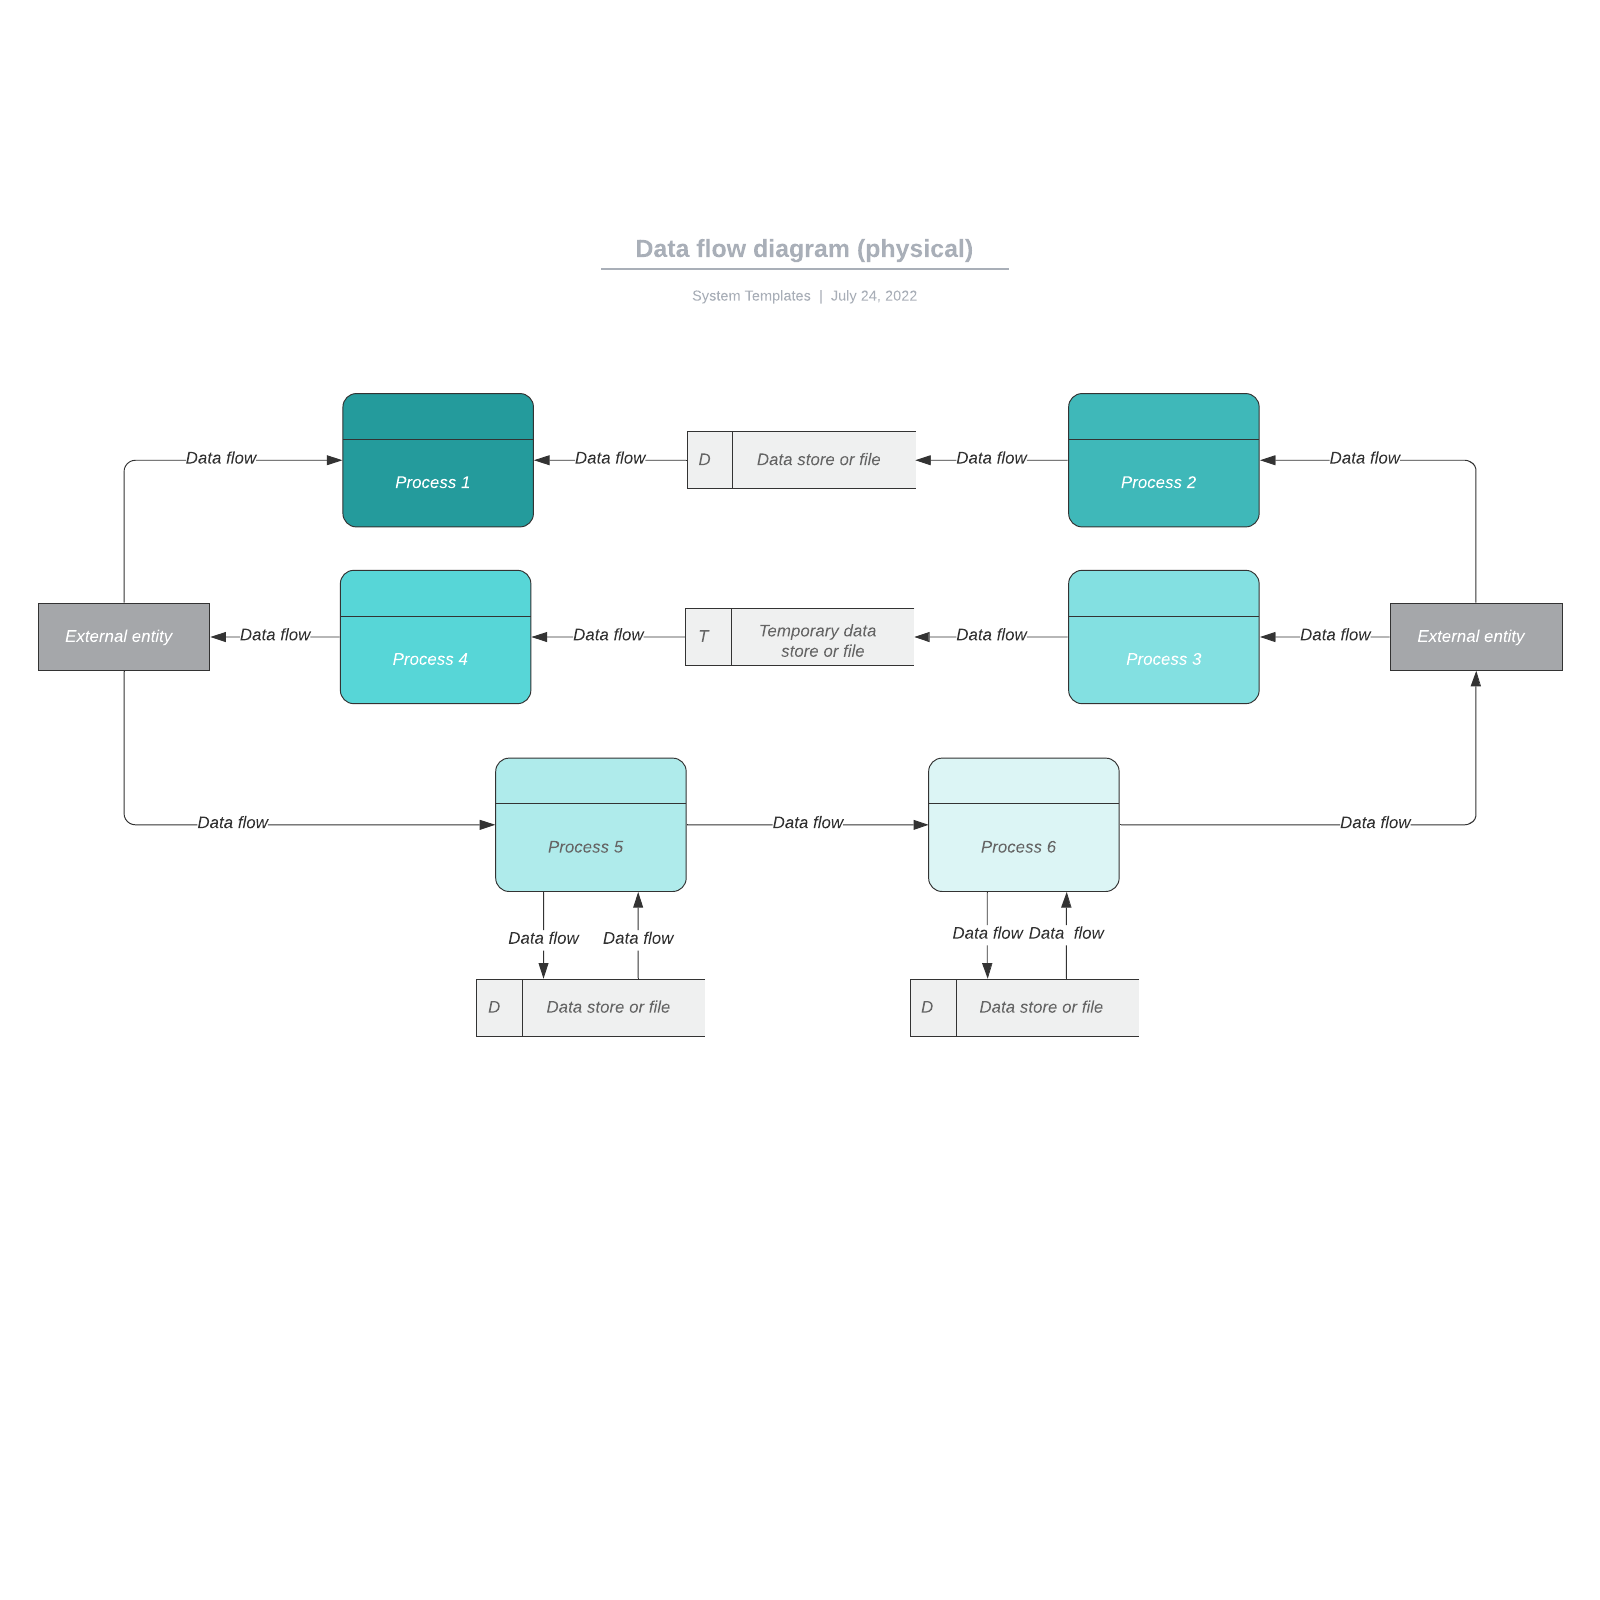 Data flow diagram (physical)